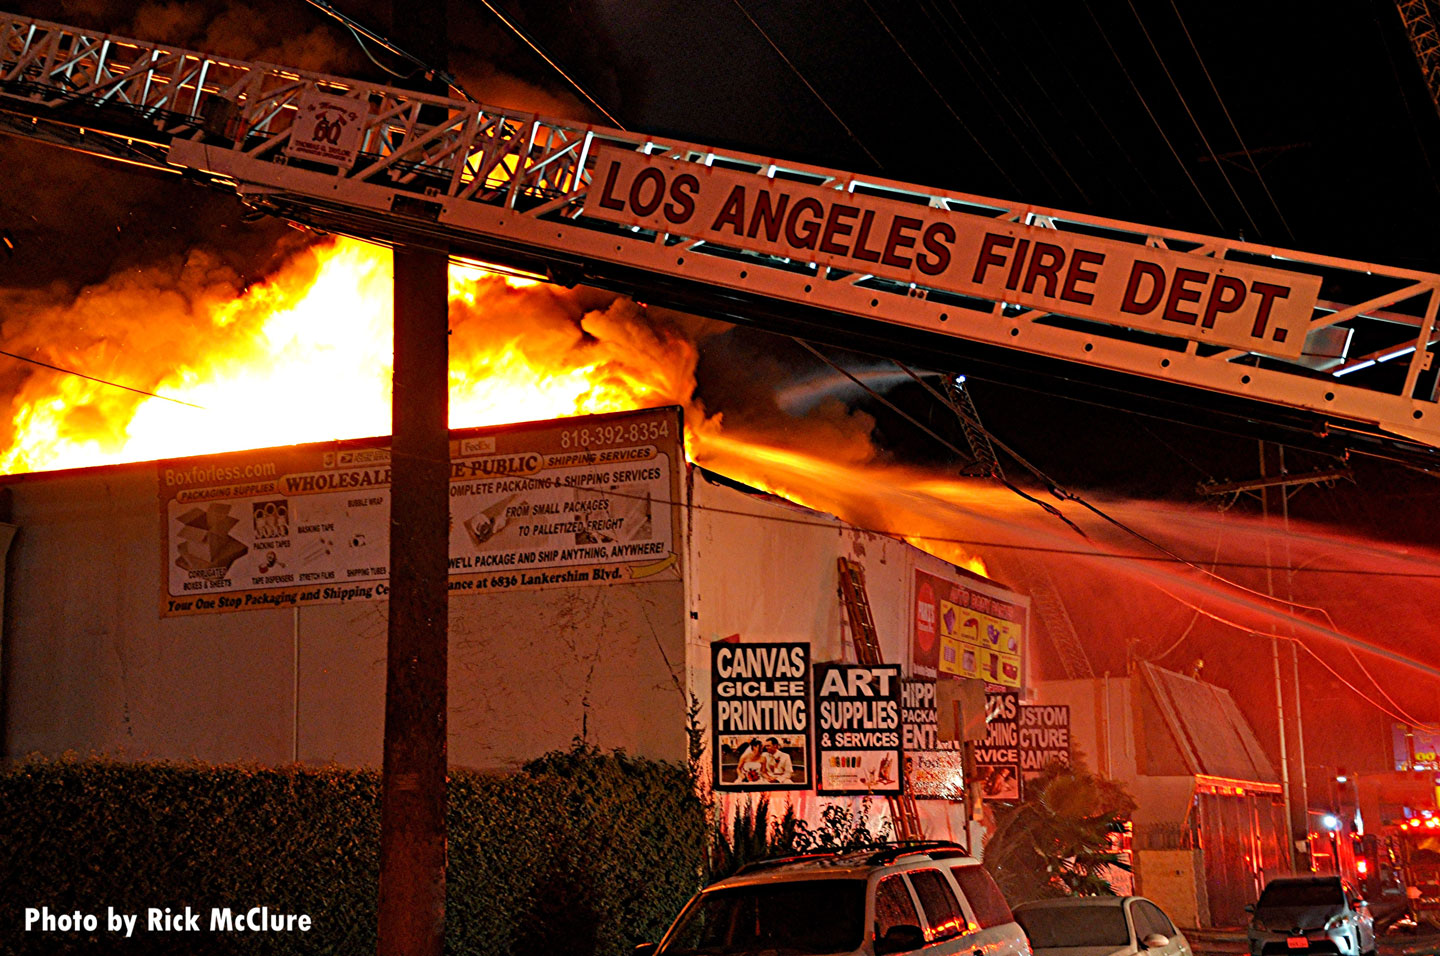 Los Angeles Fire Department aerial device at the scene of the fire